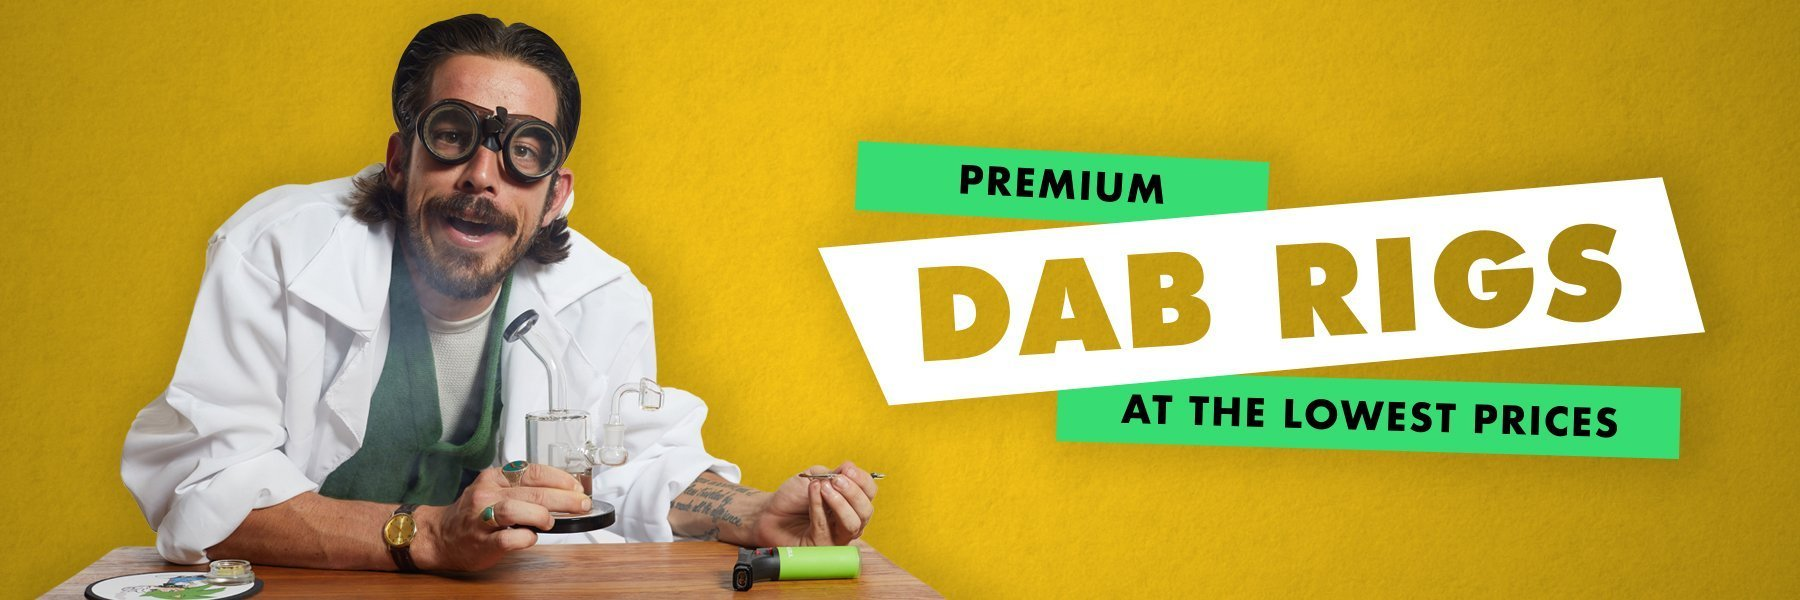 Dab Tools - Best collection of cool dab tool accessories